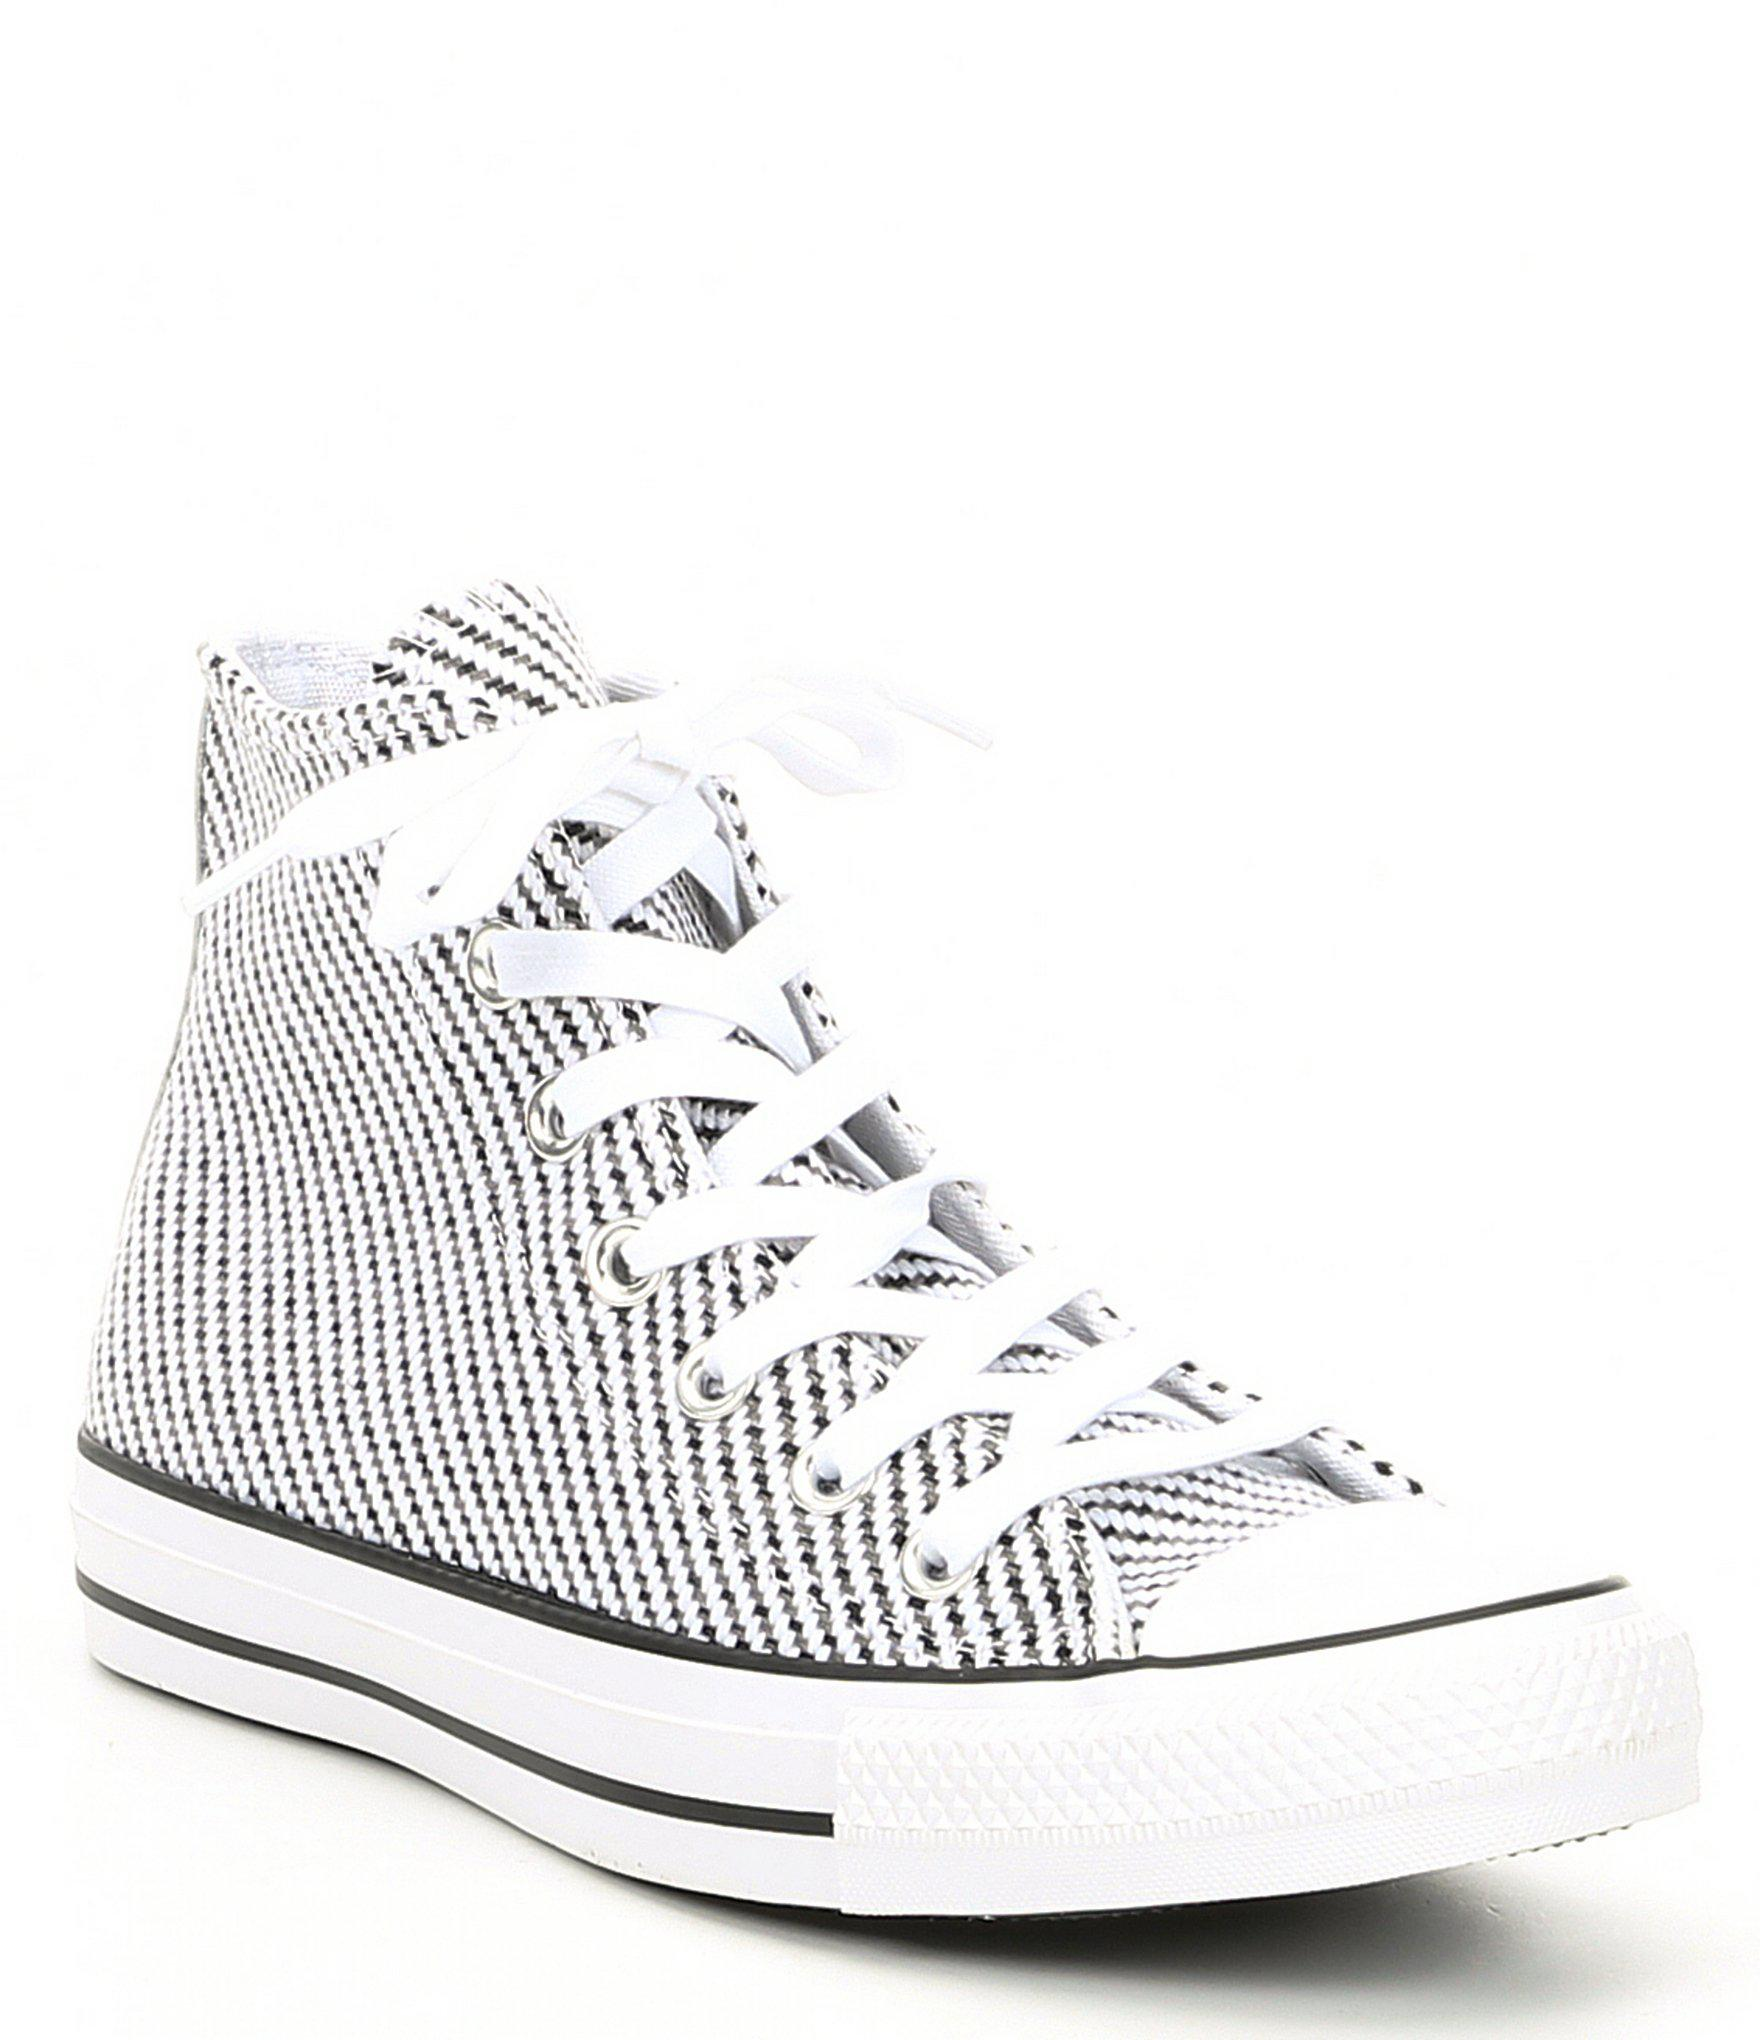 4c322dbcc1d0 Lyst - Converse Chuck Taylor All Star Hi Top Sneakers in White